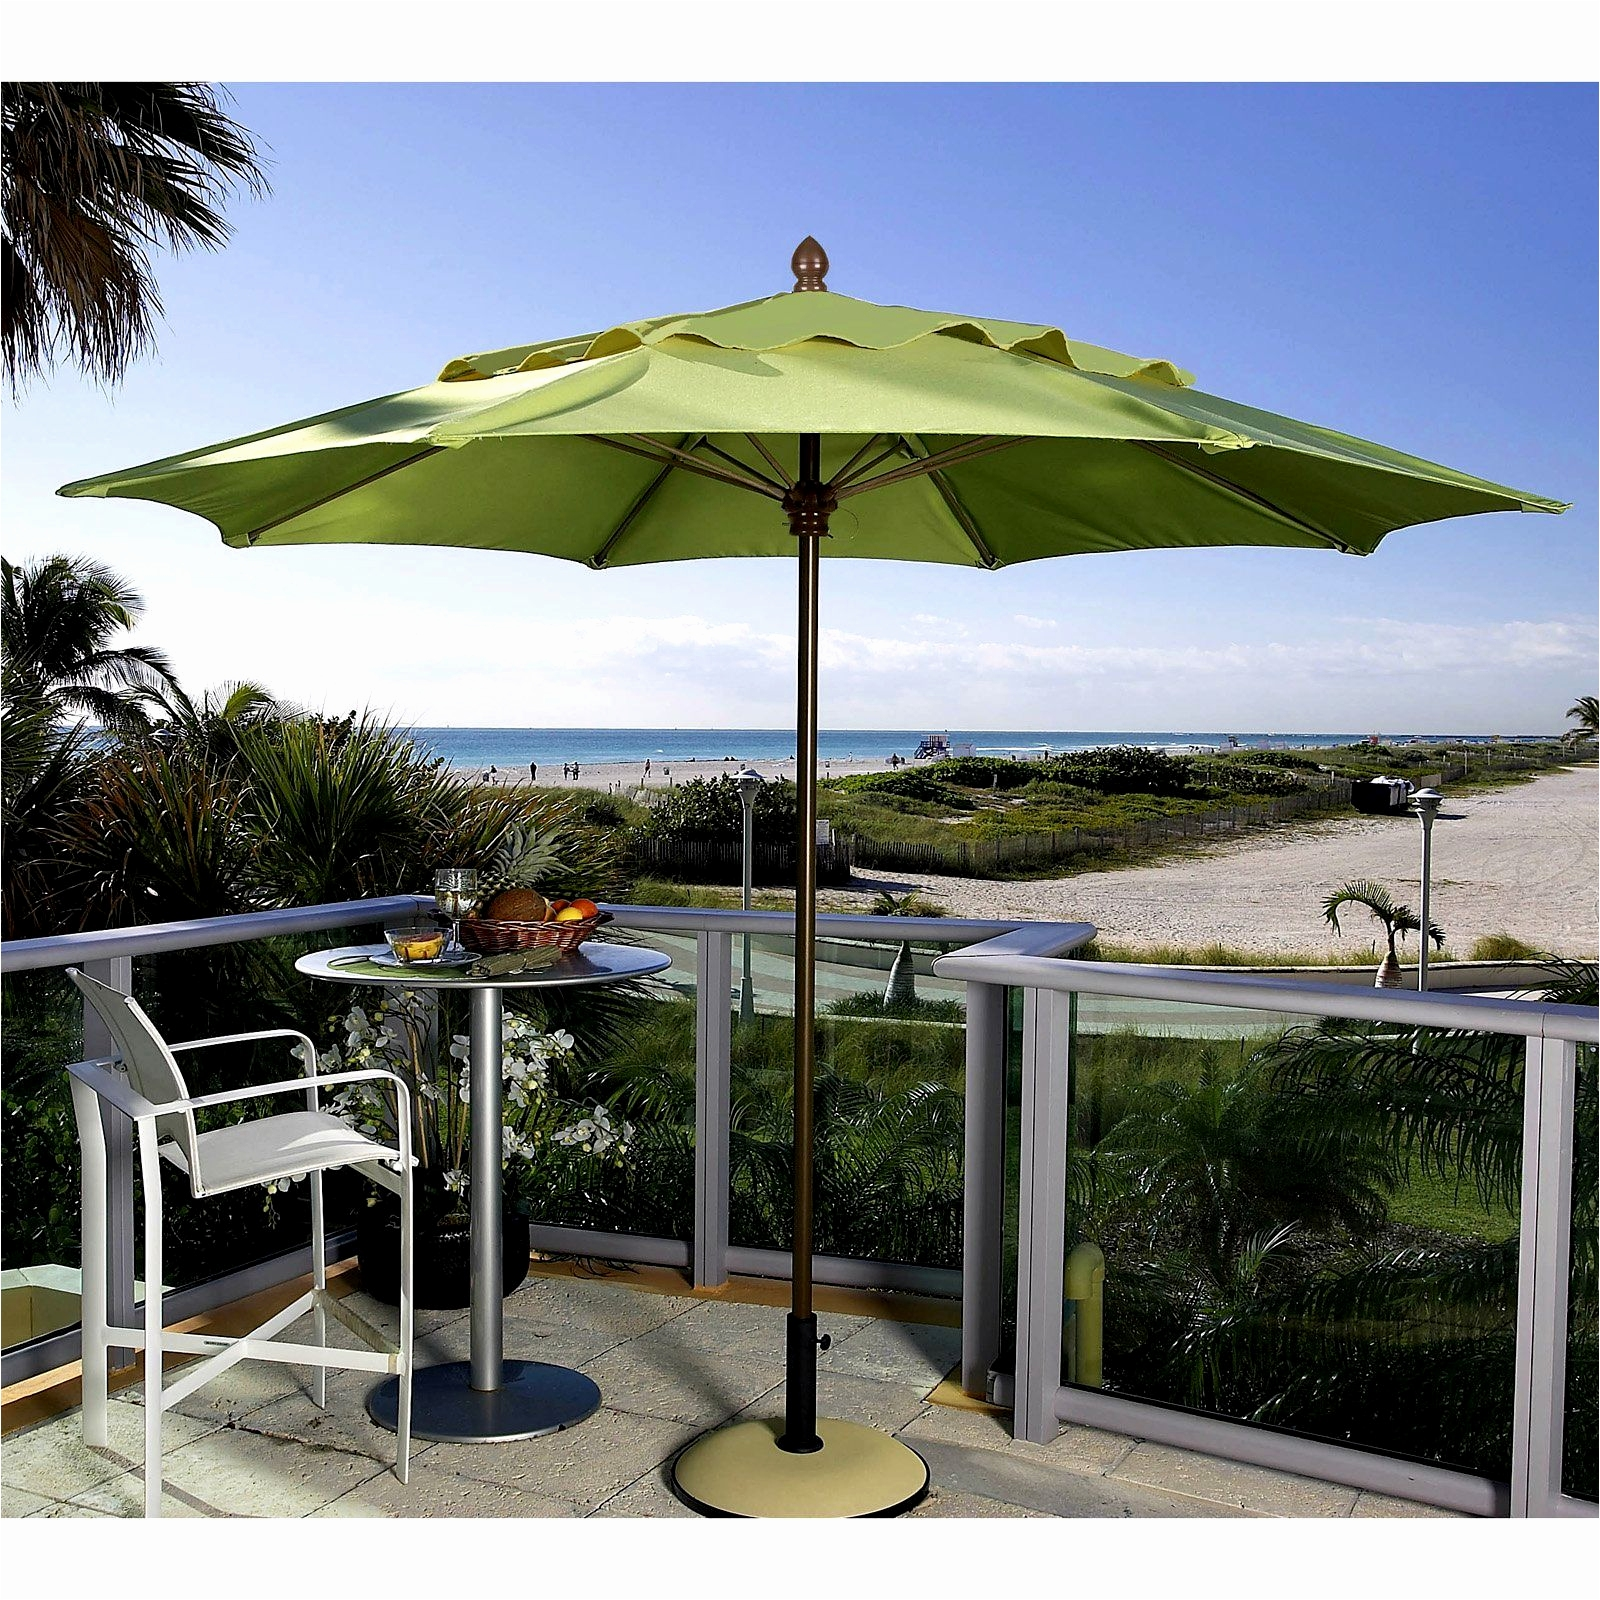 Patio Umbrellas Costco | Patio Umbrella Clearance | Costco Offset Umbrella